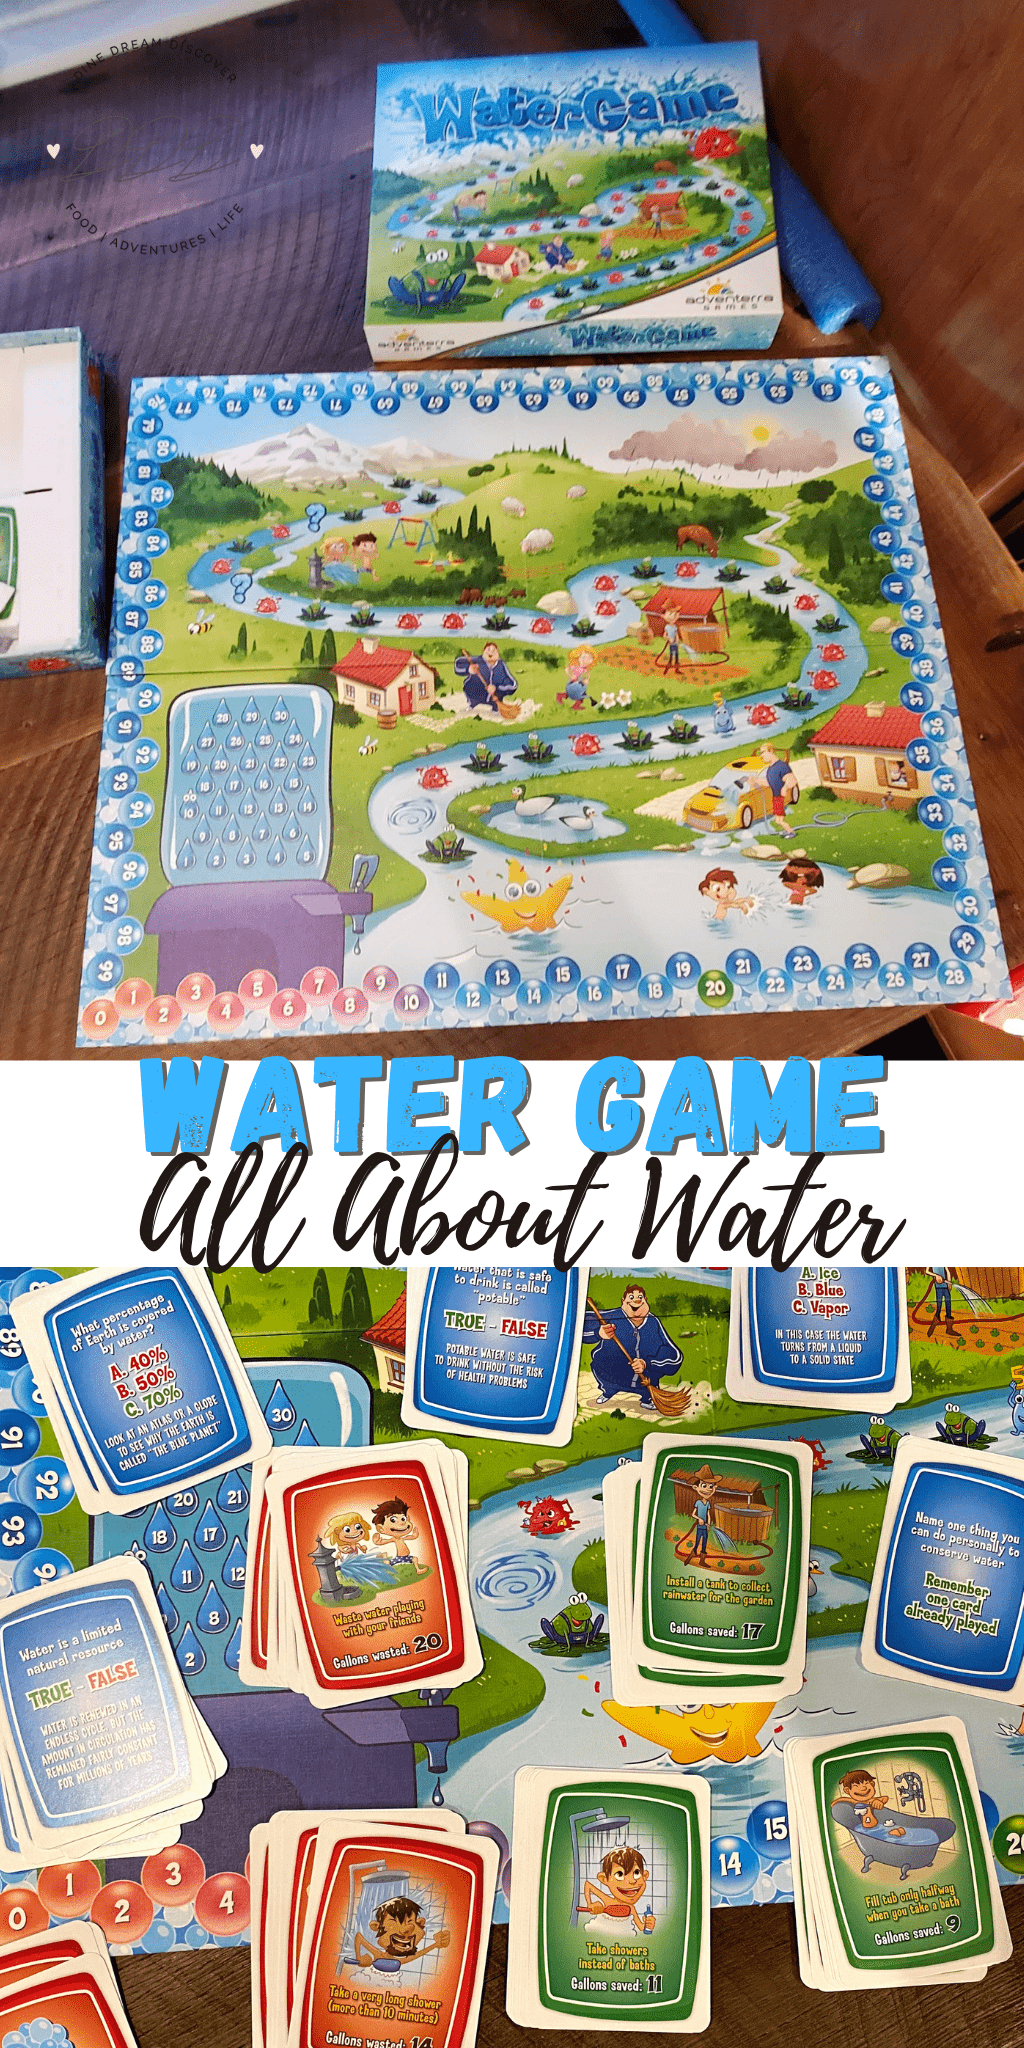 Water Game Teaches Kids About Water